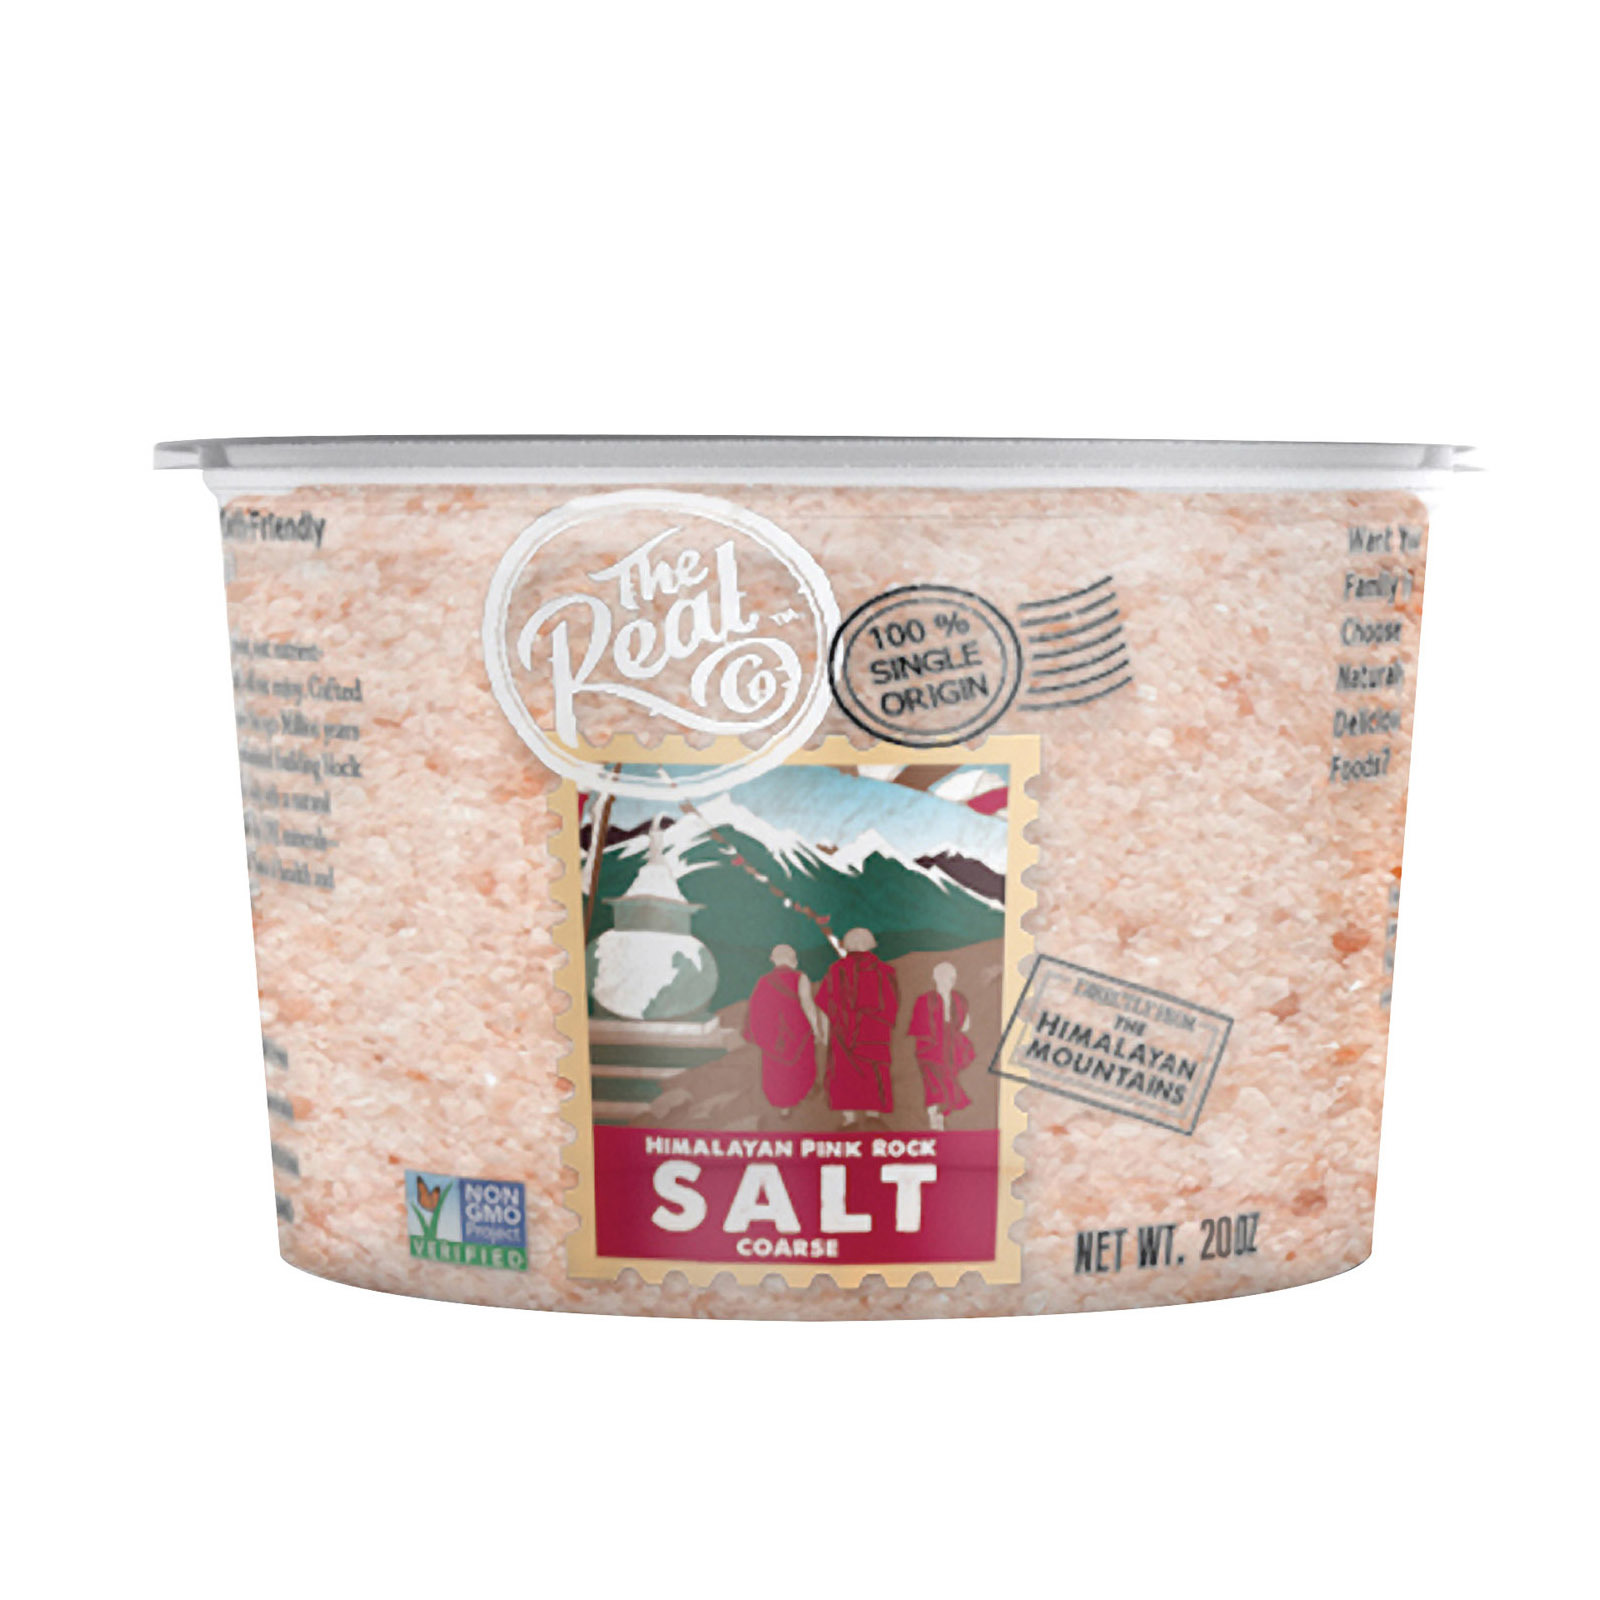 The Real Company Himalayan Pink Rock Salt - Course - Case of 6 - 20 oz.